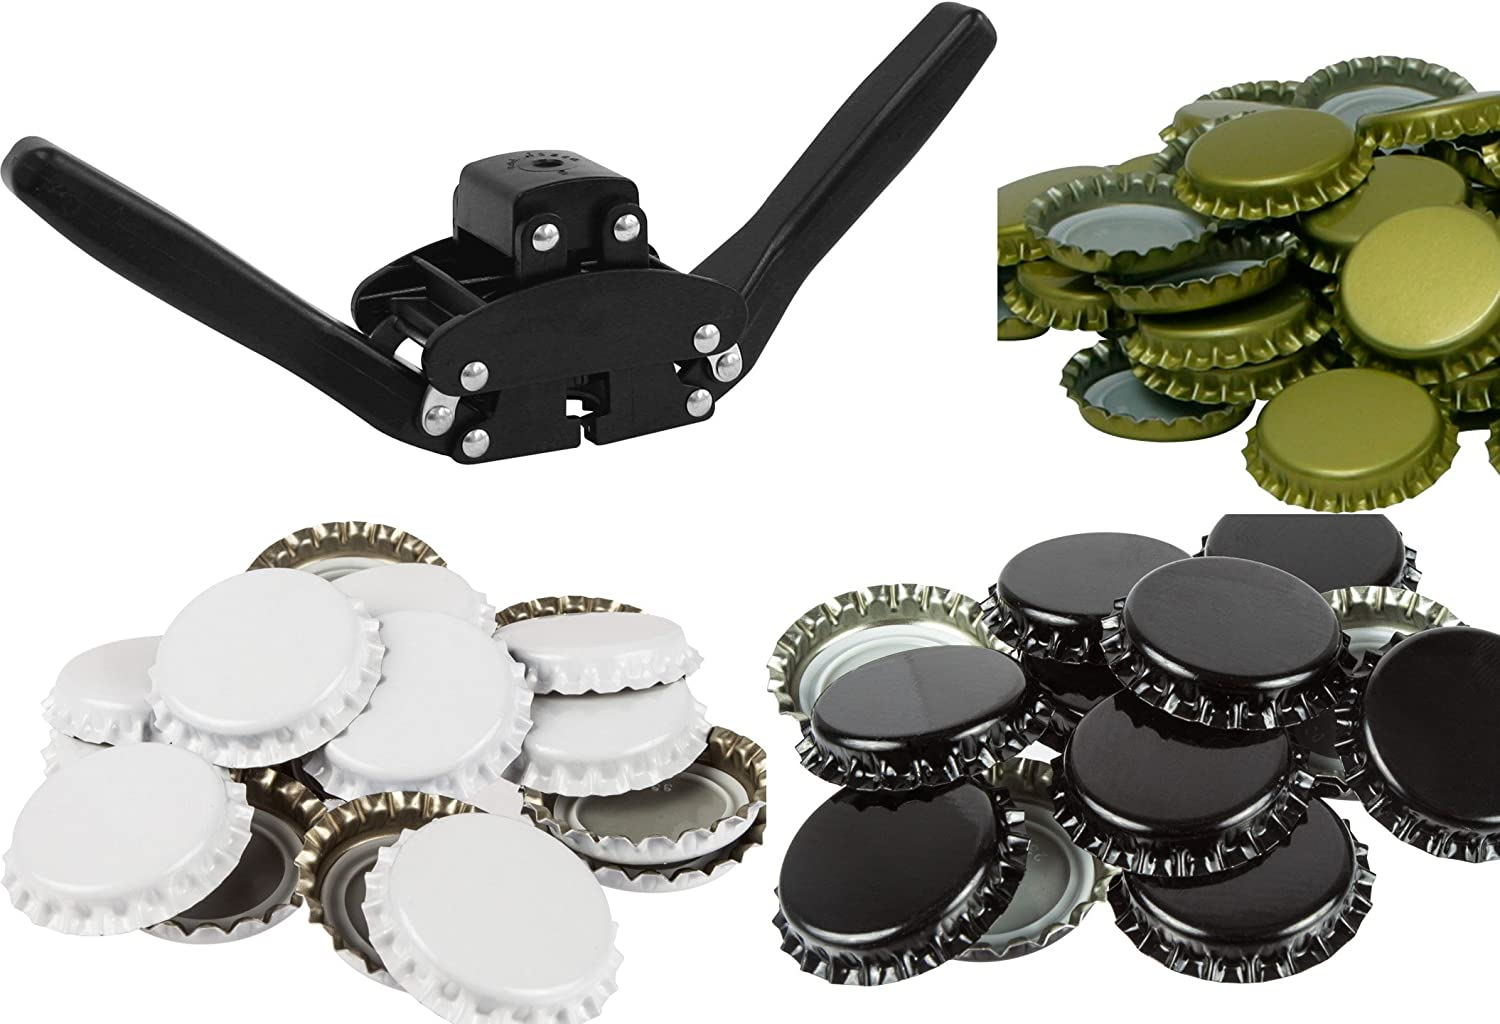 CAPPER KIT-TWO HANDED CAPPER WITH 250 MIXED CROWN CAPS,DELIVERY INCLUDED!! COSTWISE